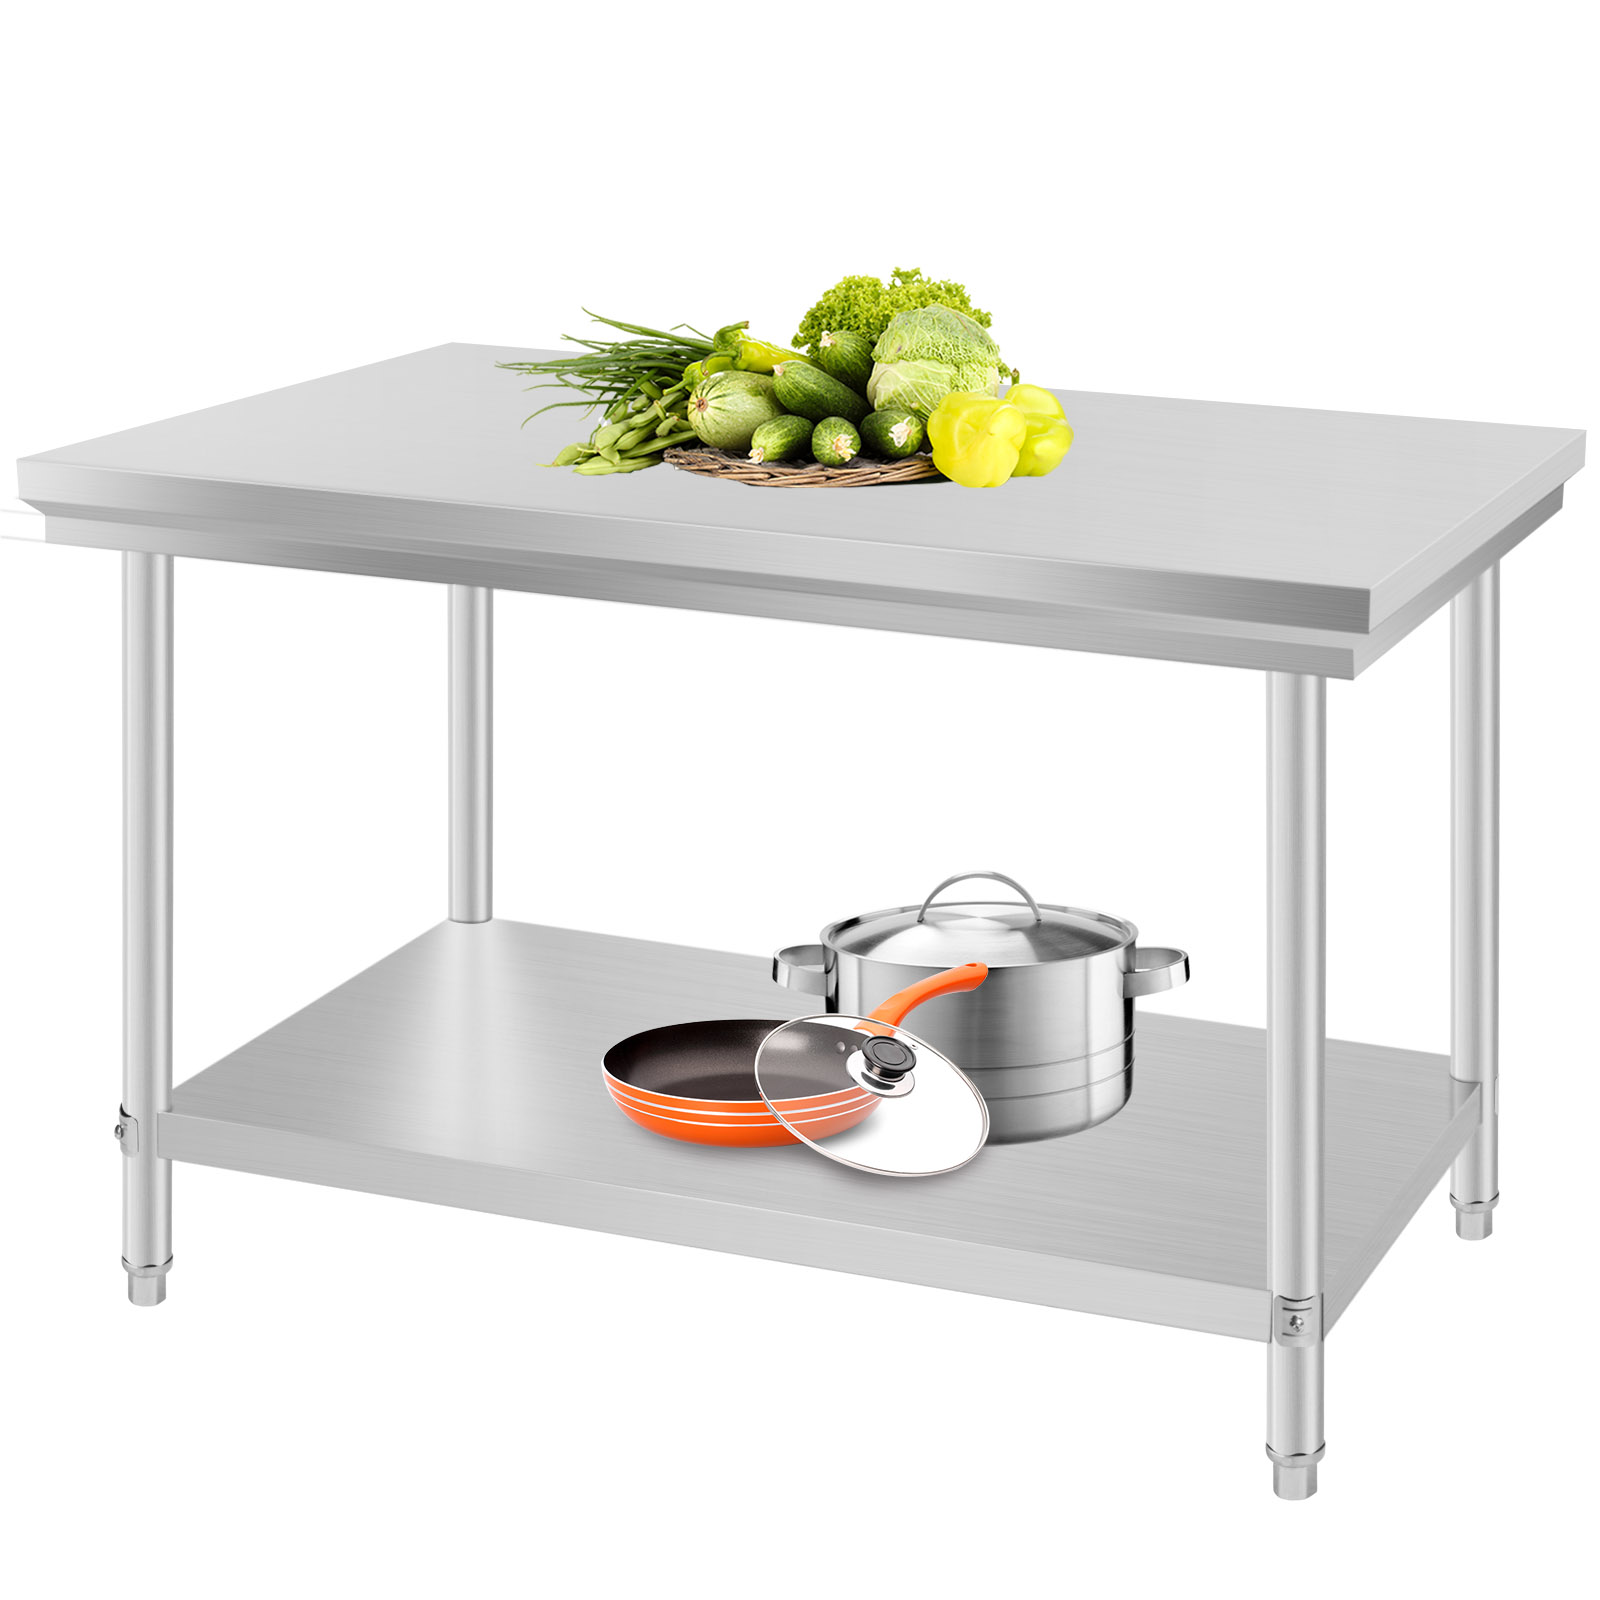 All Size Commercial Stainless Steel Kitchen Work Bench